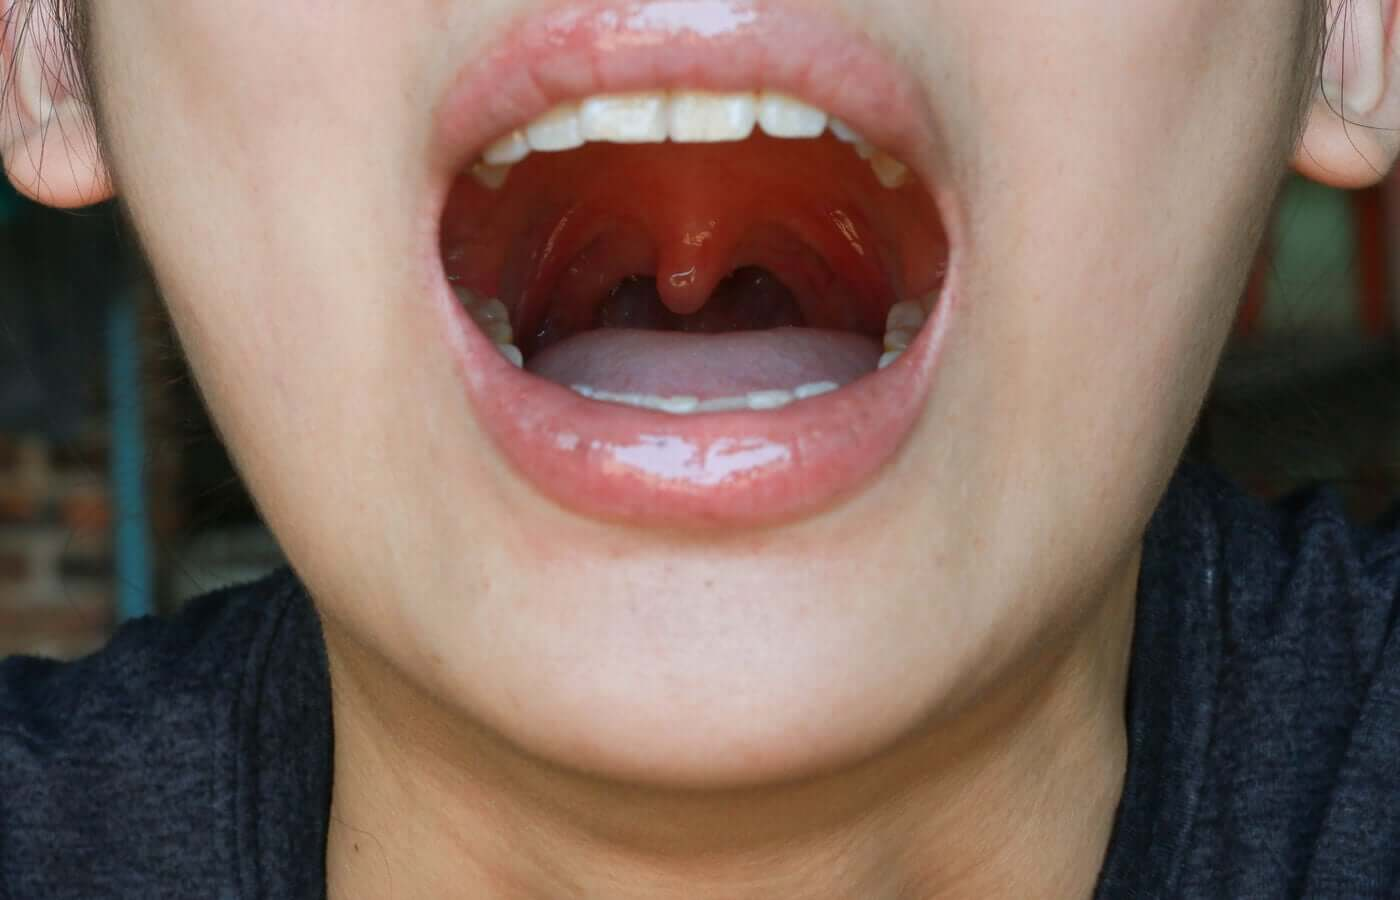 A woman with a swollen uvula.